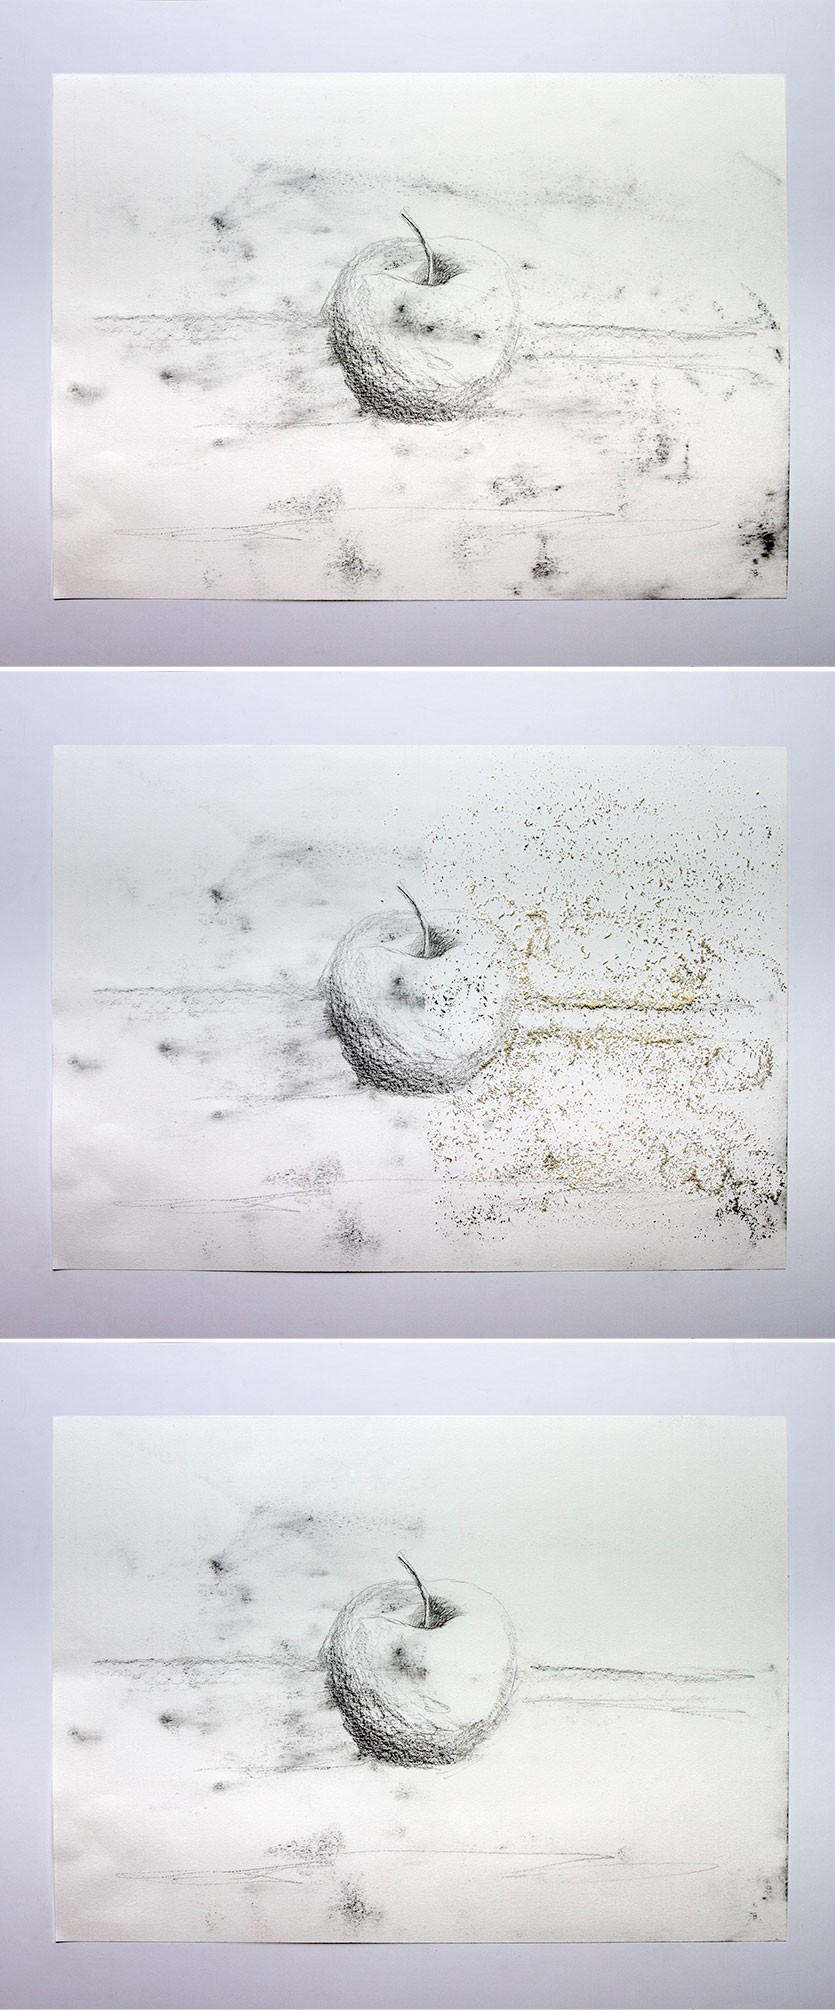 Image 1: drawing has been dirtied with charcoal smudges. Image 2: the Factis cleaning cushion eraser dust was sprinkled on and rubbed with a finger and it instantly turned black everywhere it is picking up the dirt. Image 3: the right side is now cleaned of smudges everywhere the crumbs were rubbed. Click for larger image.